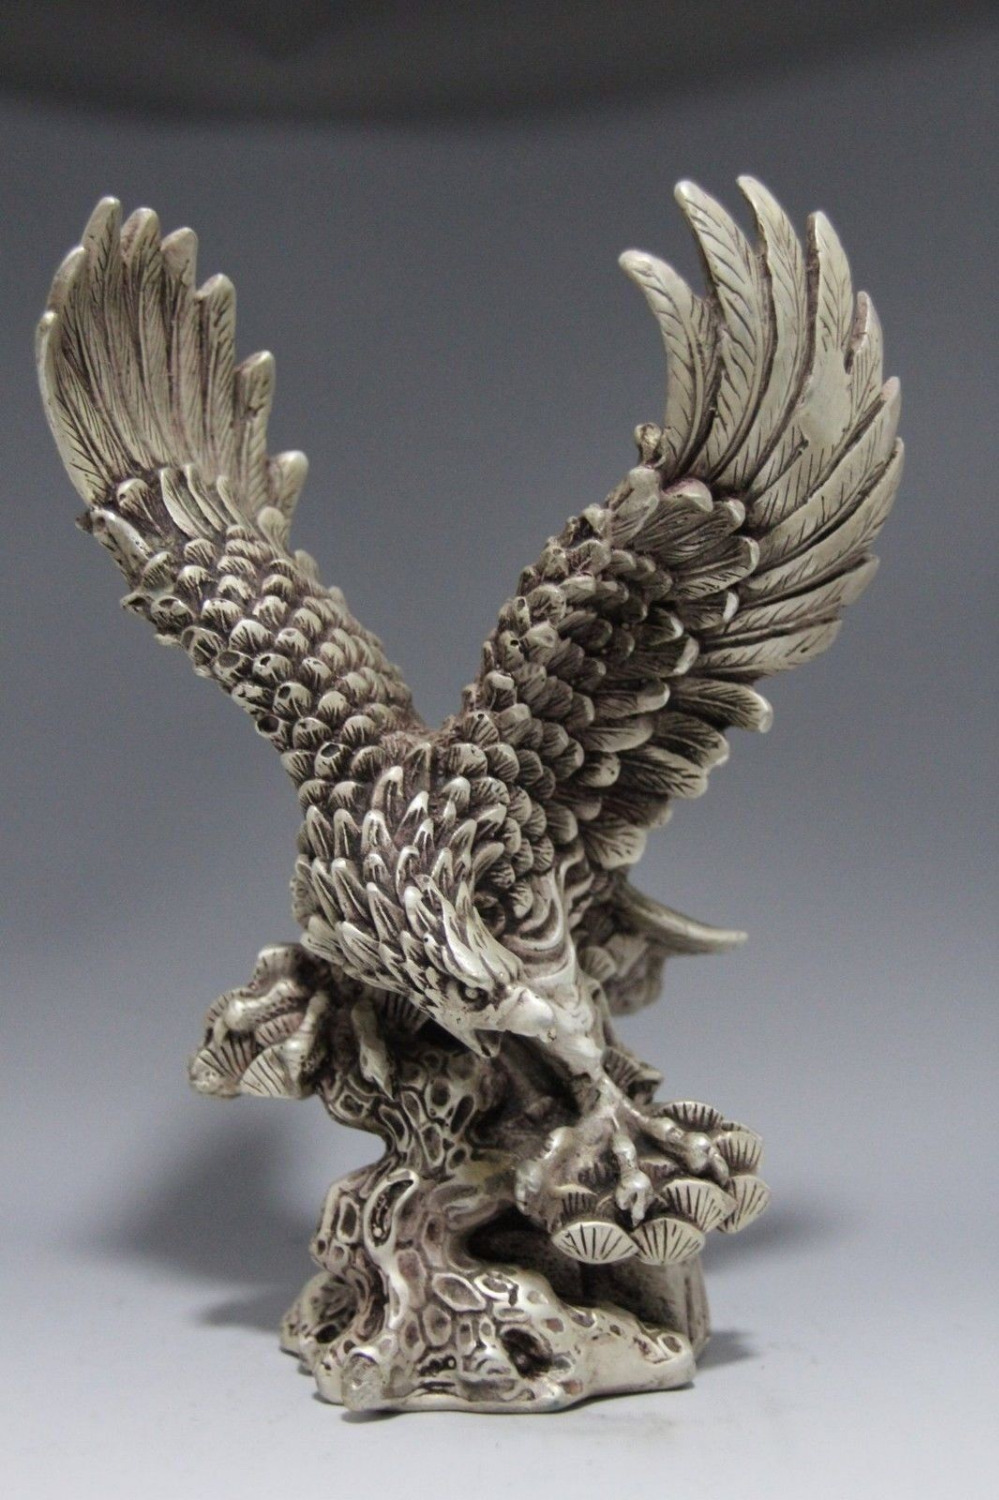 Collectible Decorated Old Handwork Tibet Silver Carve Eagle Dapeng wing Statue Collectible Decorated Old Handwork Tibet Silver Carve Eagle Dapeng wing Statue